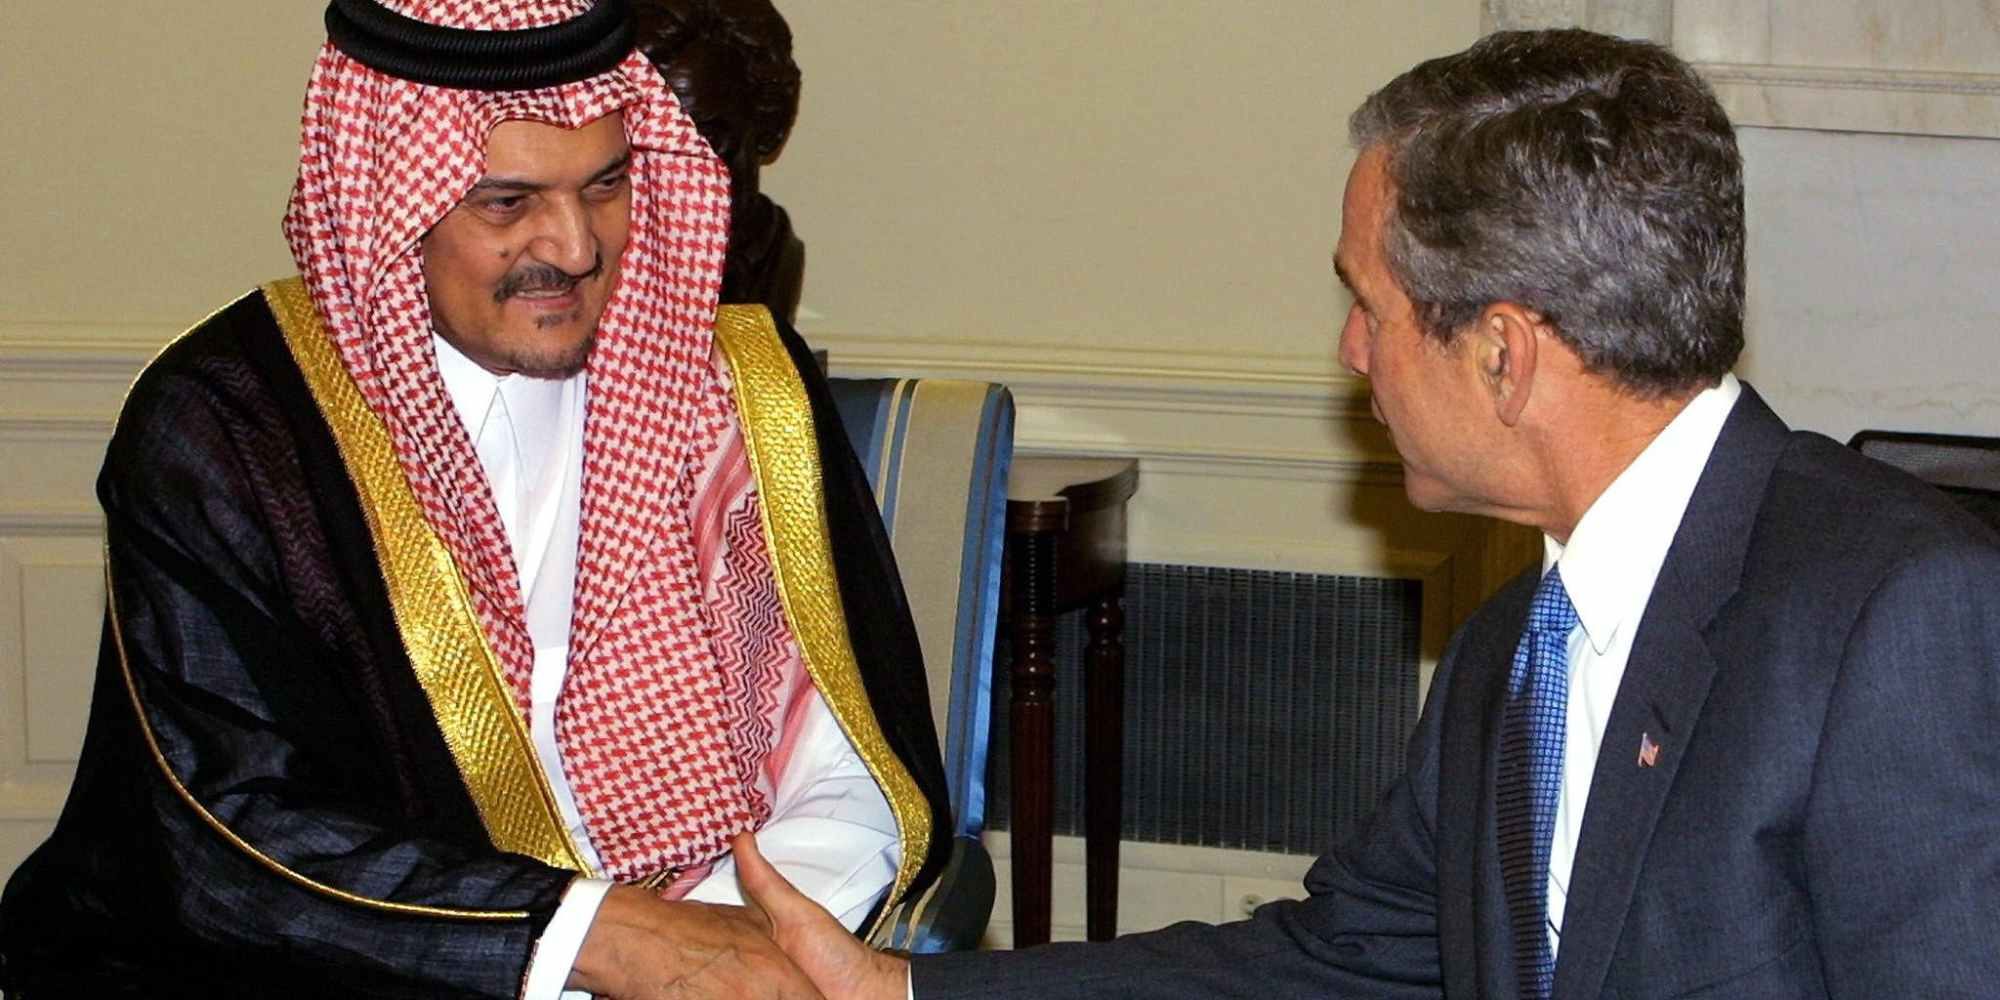 US President George W. Bush (R) meets with Kingdom of Saudi Arabia's Foreign Minister Saud al-Faisal (L) 20 September 2001 in the Oval Office of the White House in Washington, DC.